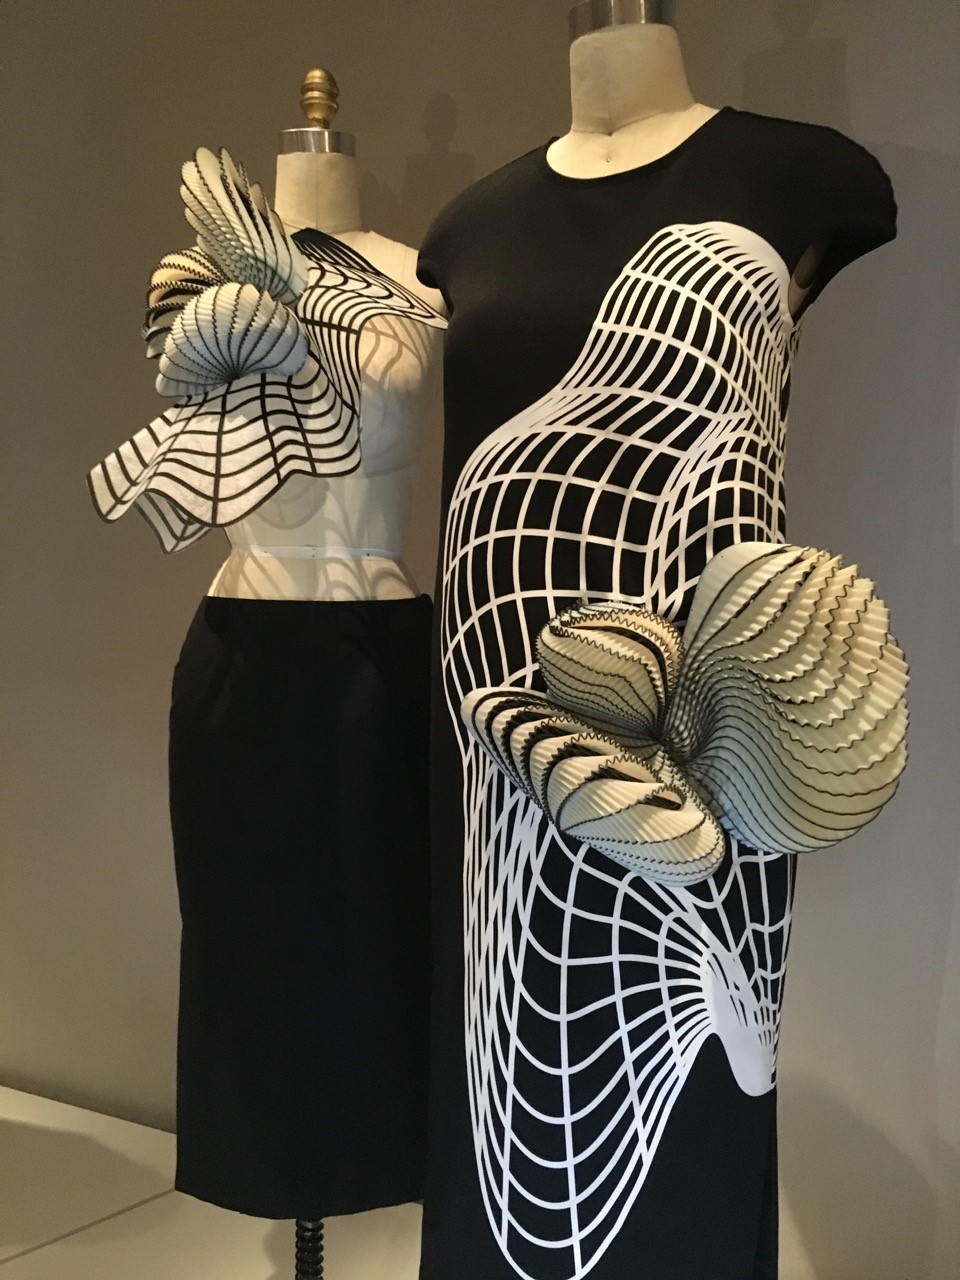 fashion and technology merge at met costume institute show